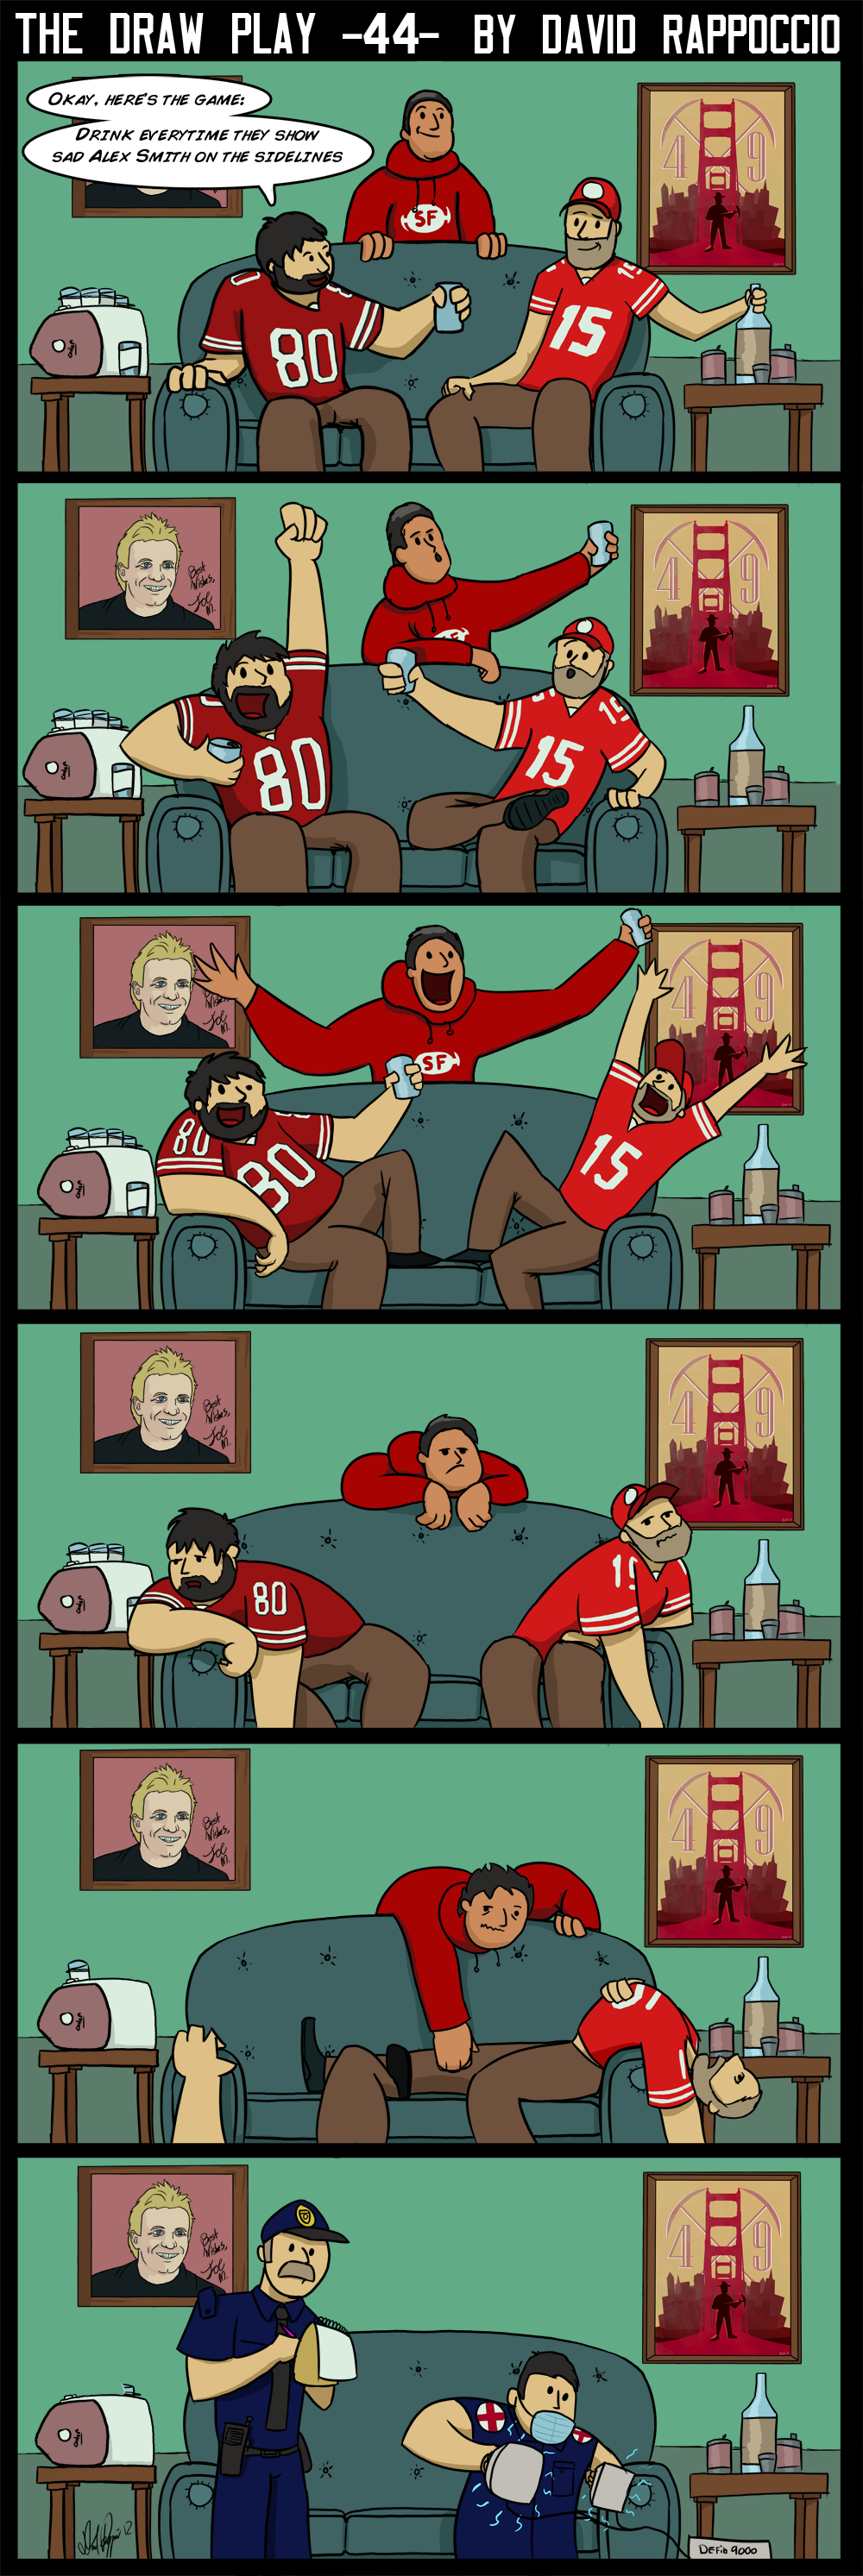 This comic takes place in the 1st quarter